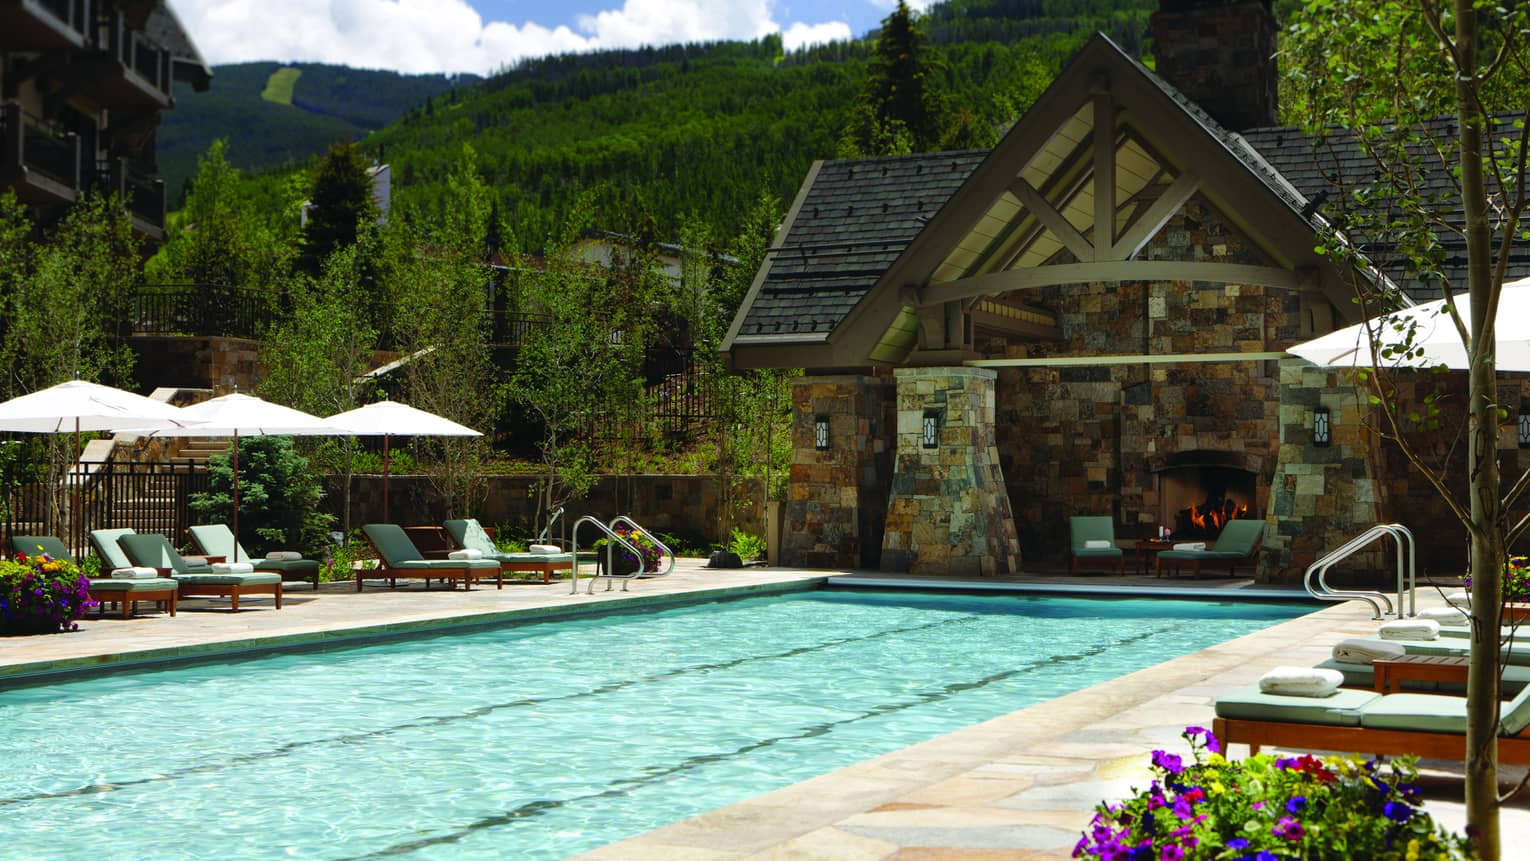 Outdoor lap pool at Four Seasons Resort Vail, lined with lounge chairs